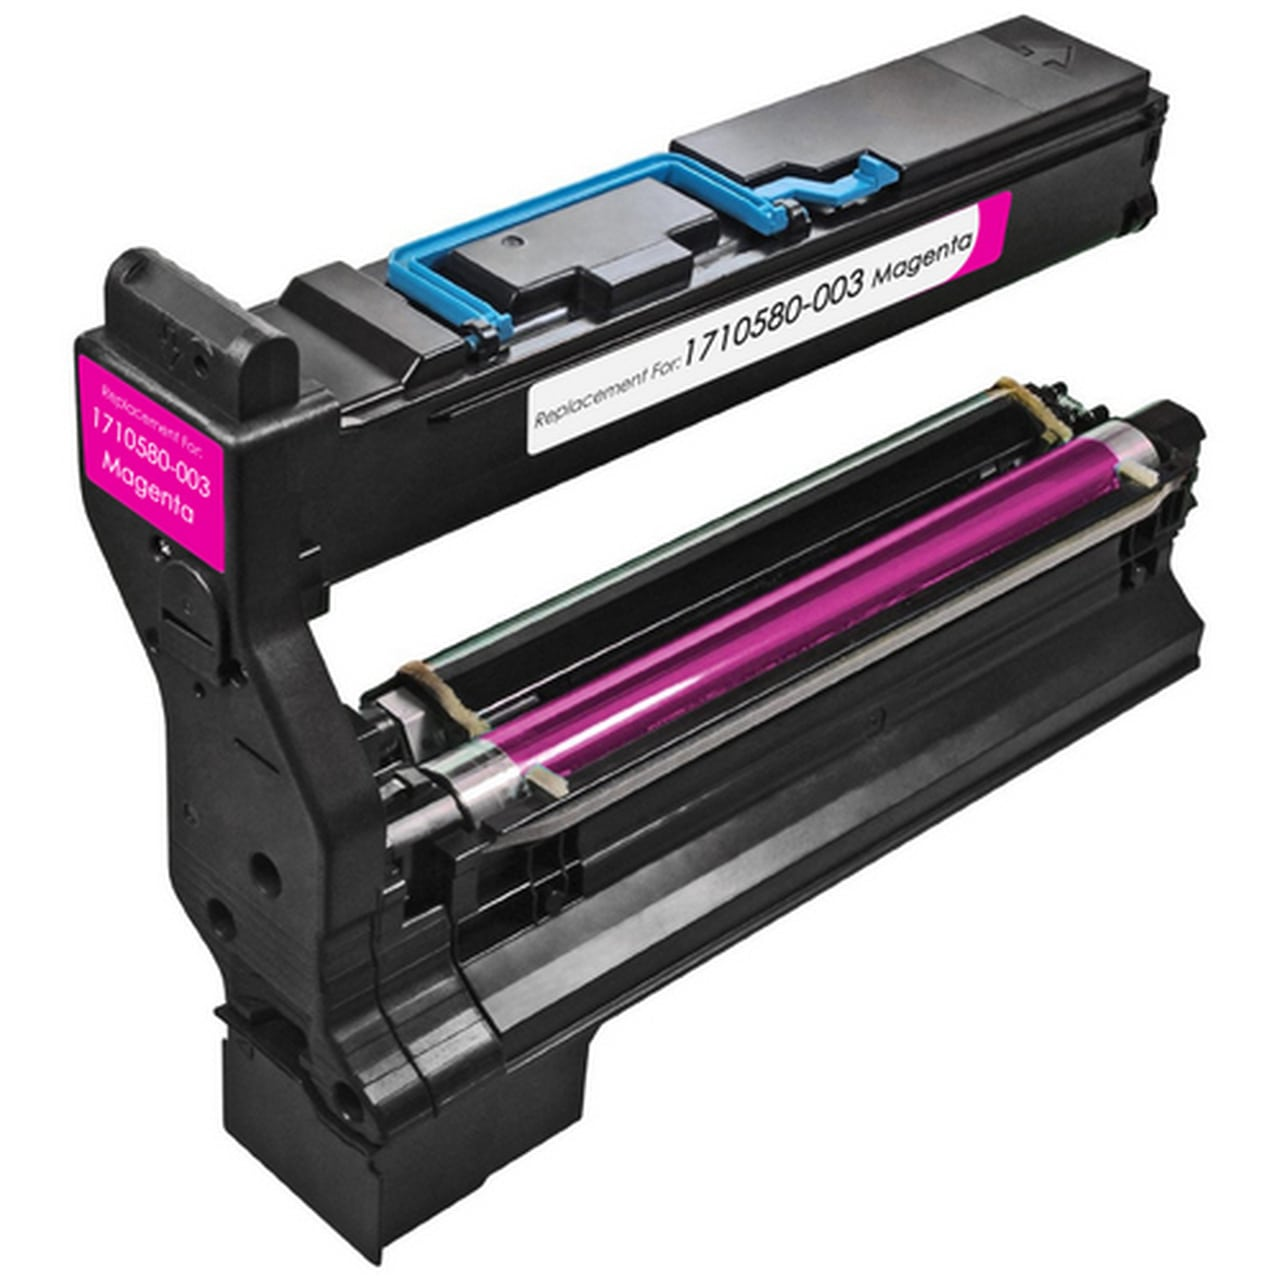 1710580-003 Toner Cartridge - Konica-Minolta Remanufactured (Magenta)